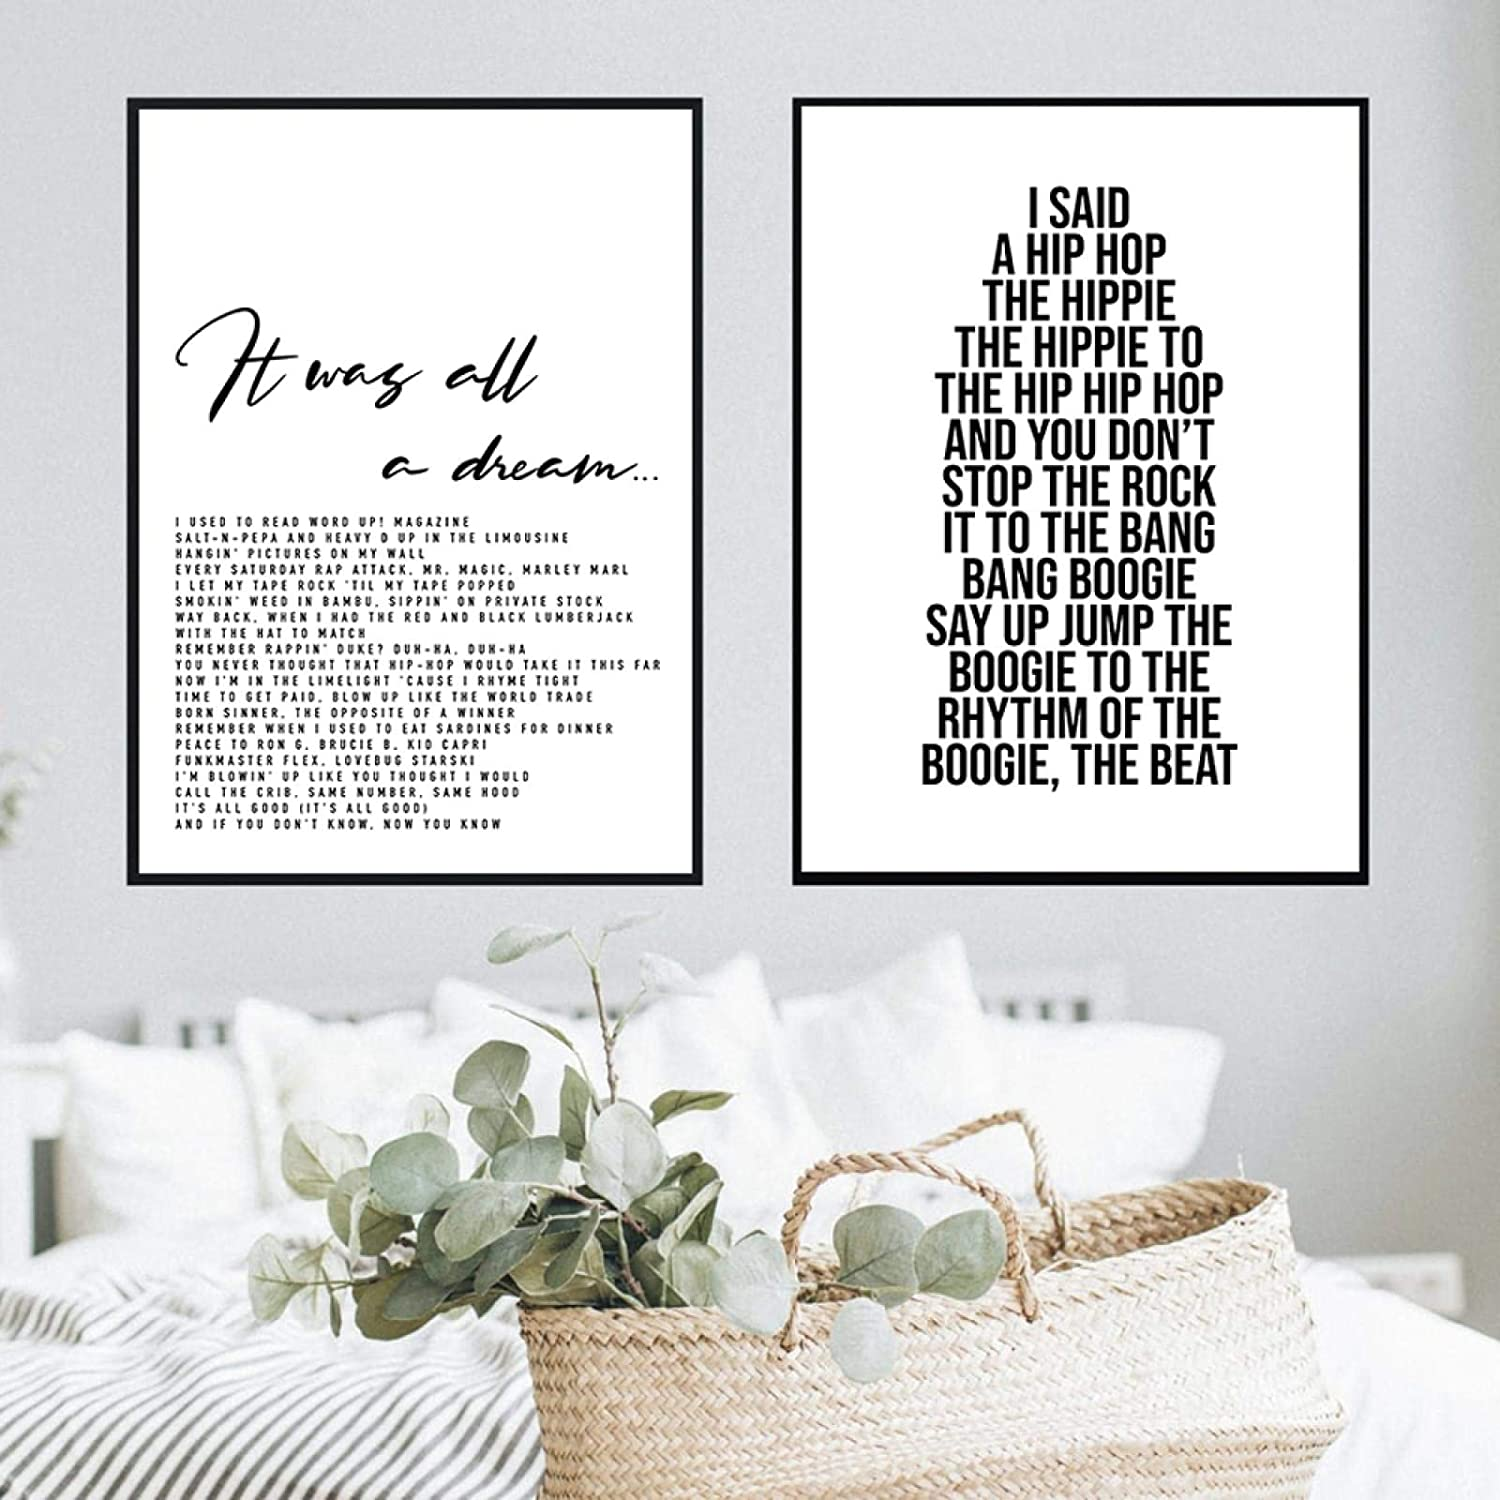 ThinkingPower Posters and Prints Picture Wall Art Hip Hop Poster Rapper Delight Lyrics Music Quote Large for Living Room Home Decor (30x50cm) 2pcs Frameless